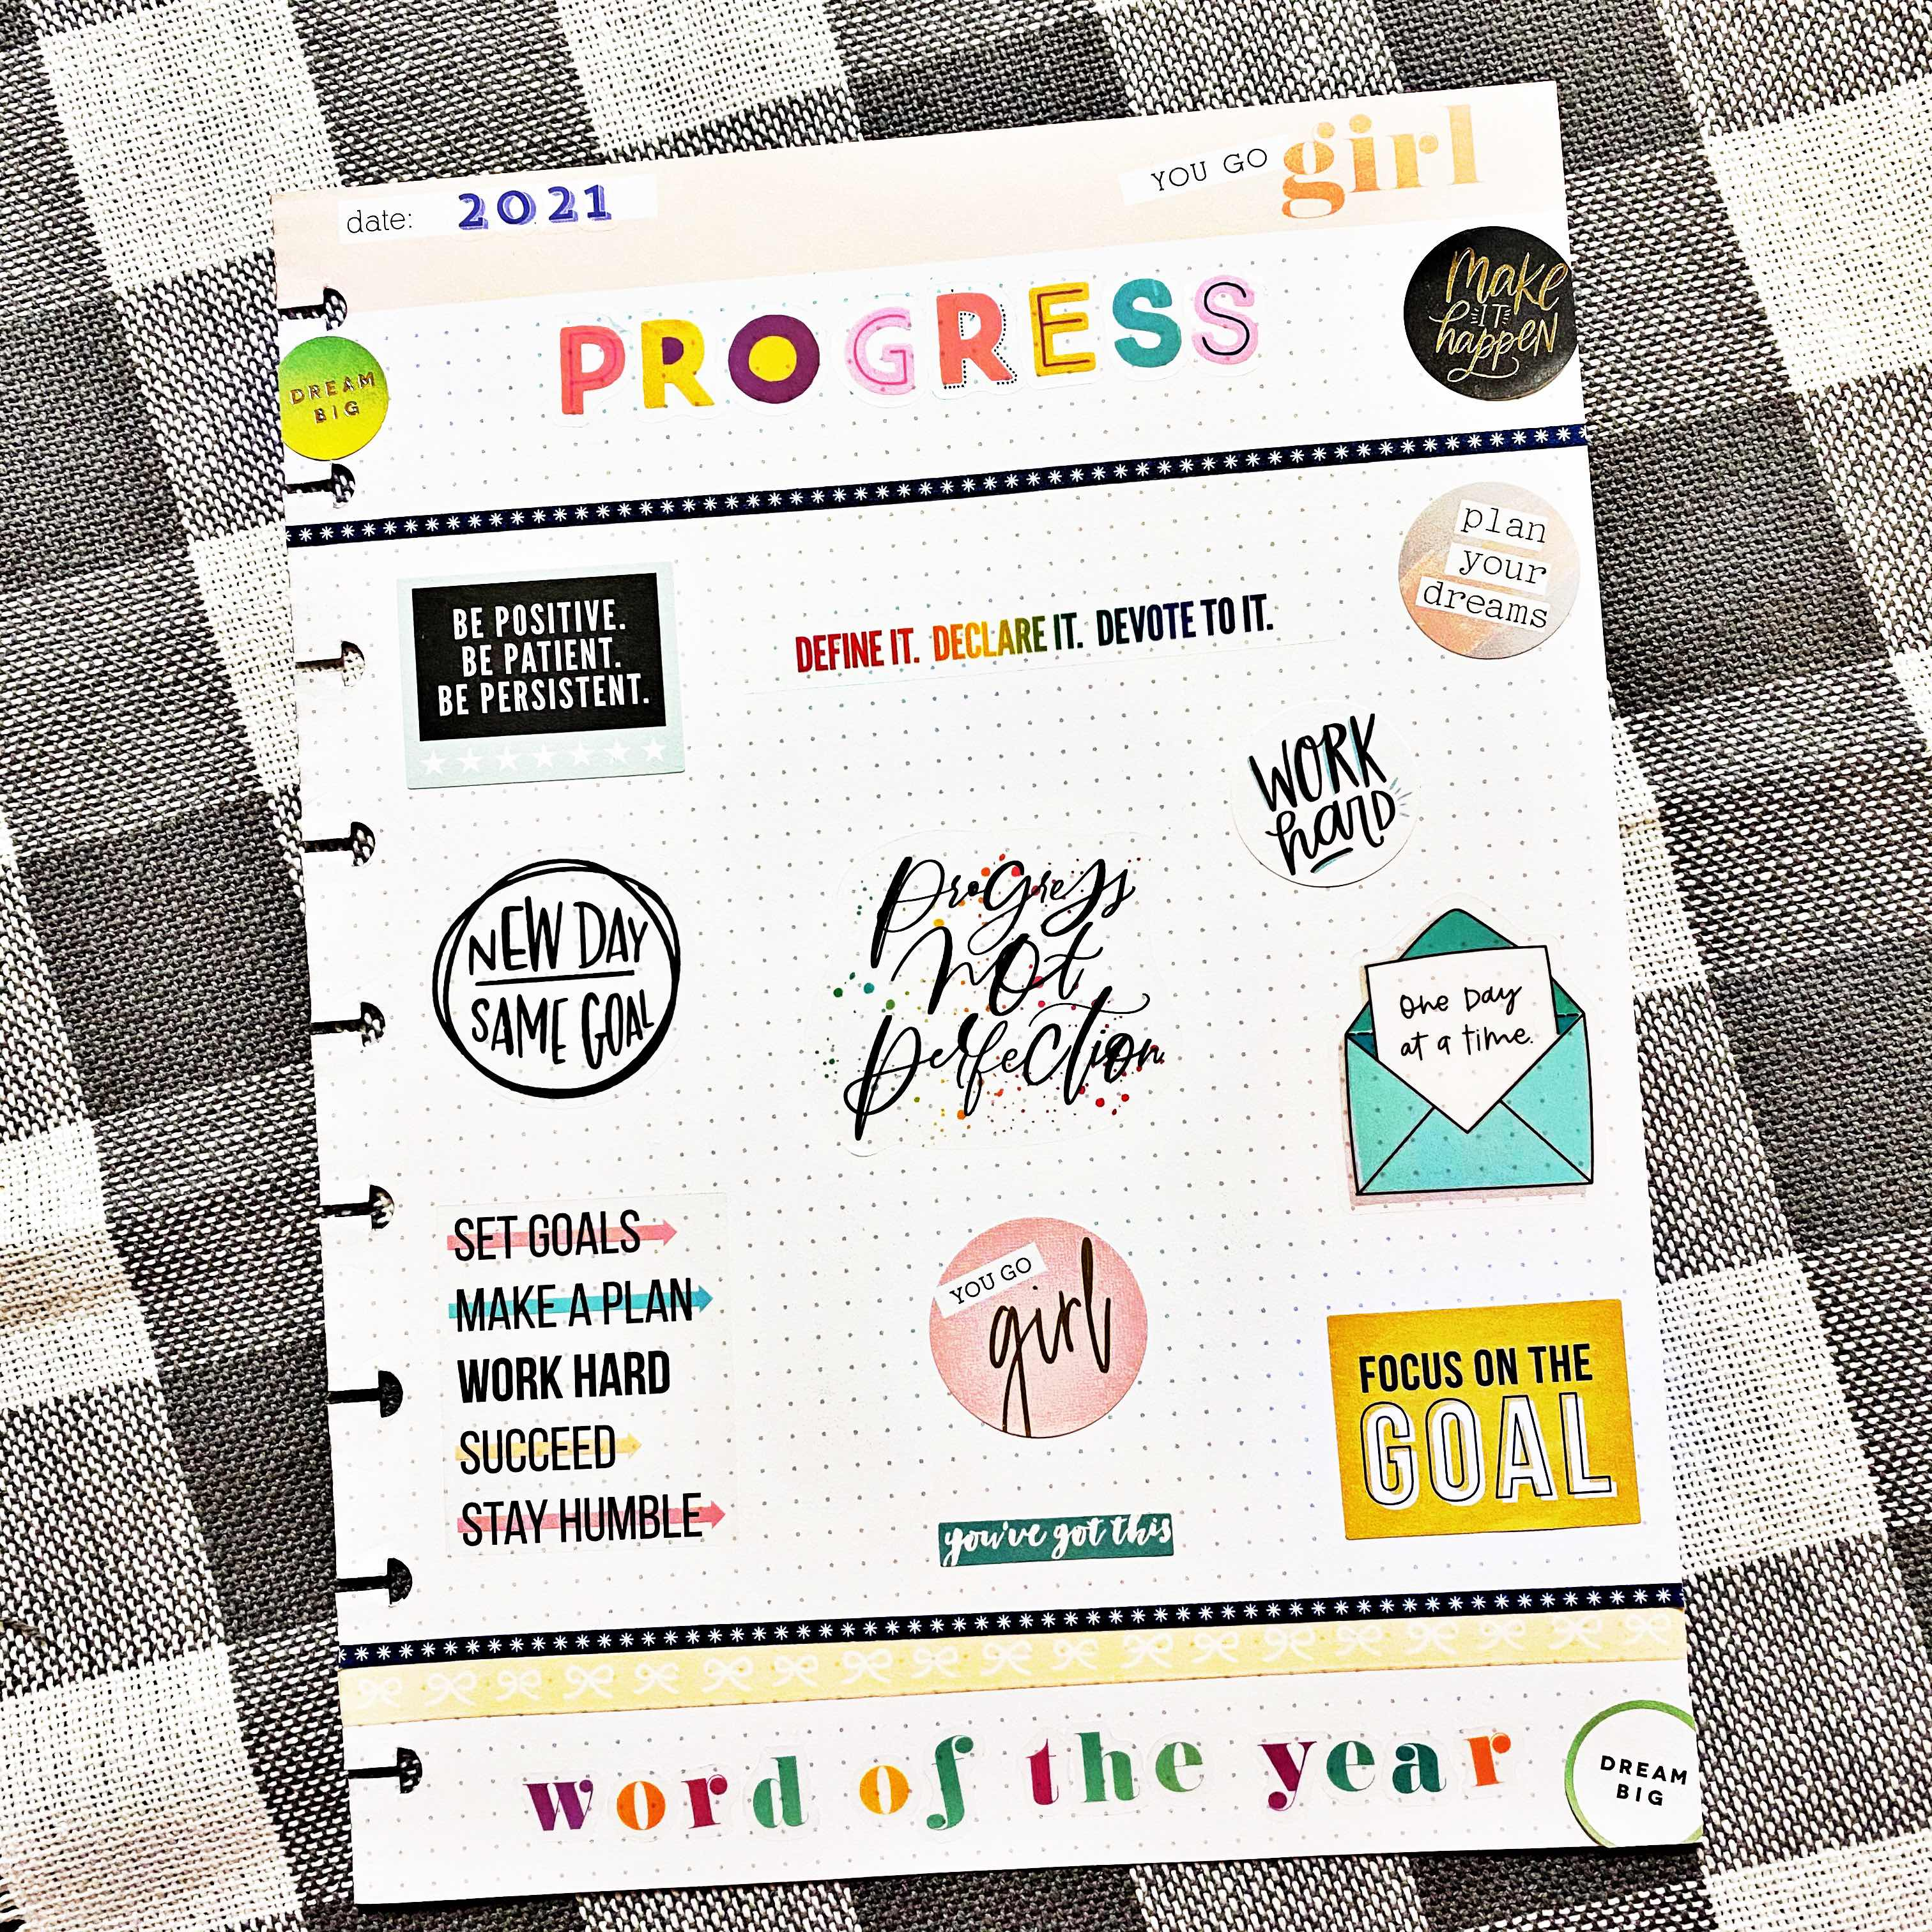 Word Of The Year - Progress